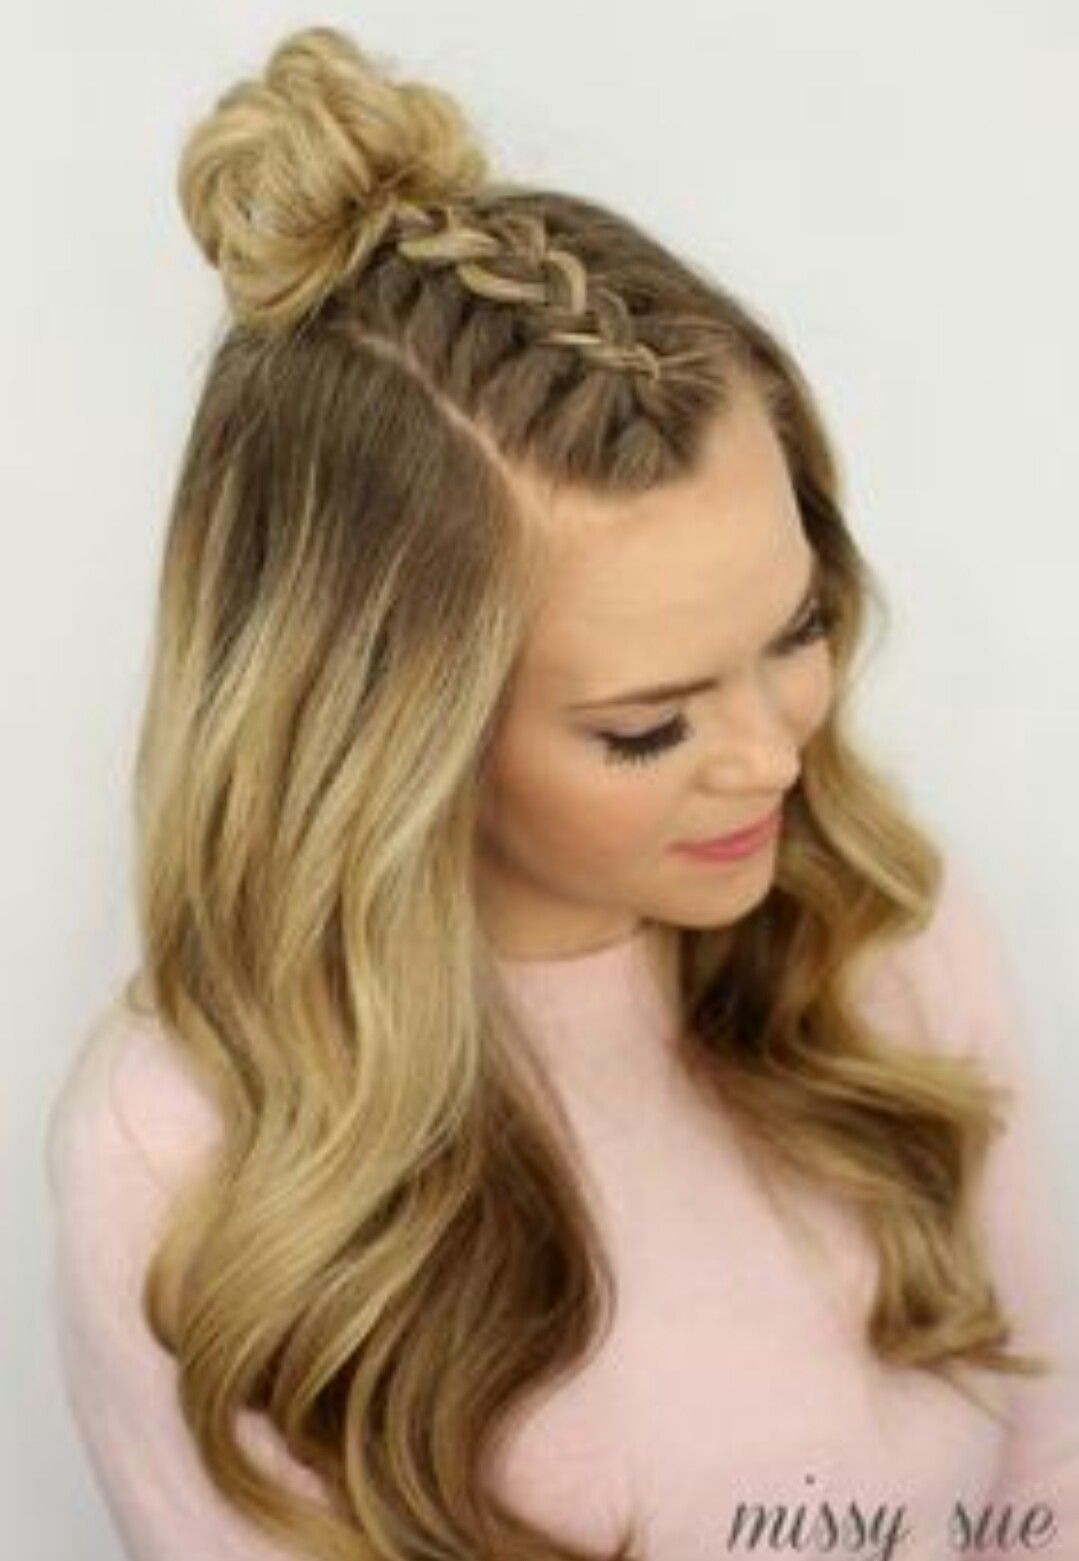 Pin by sofia dias on cabelo pinterest hair styles hair and braids